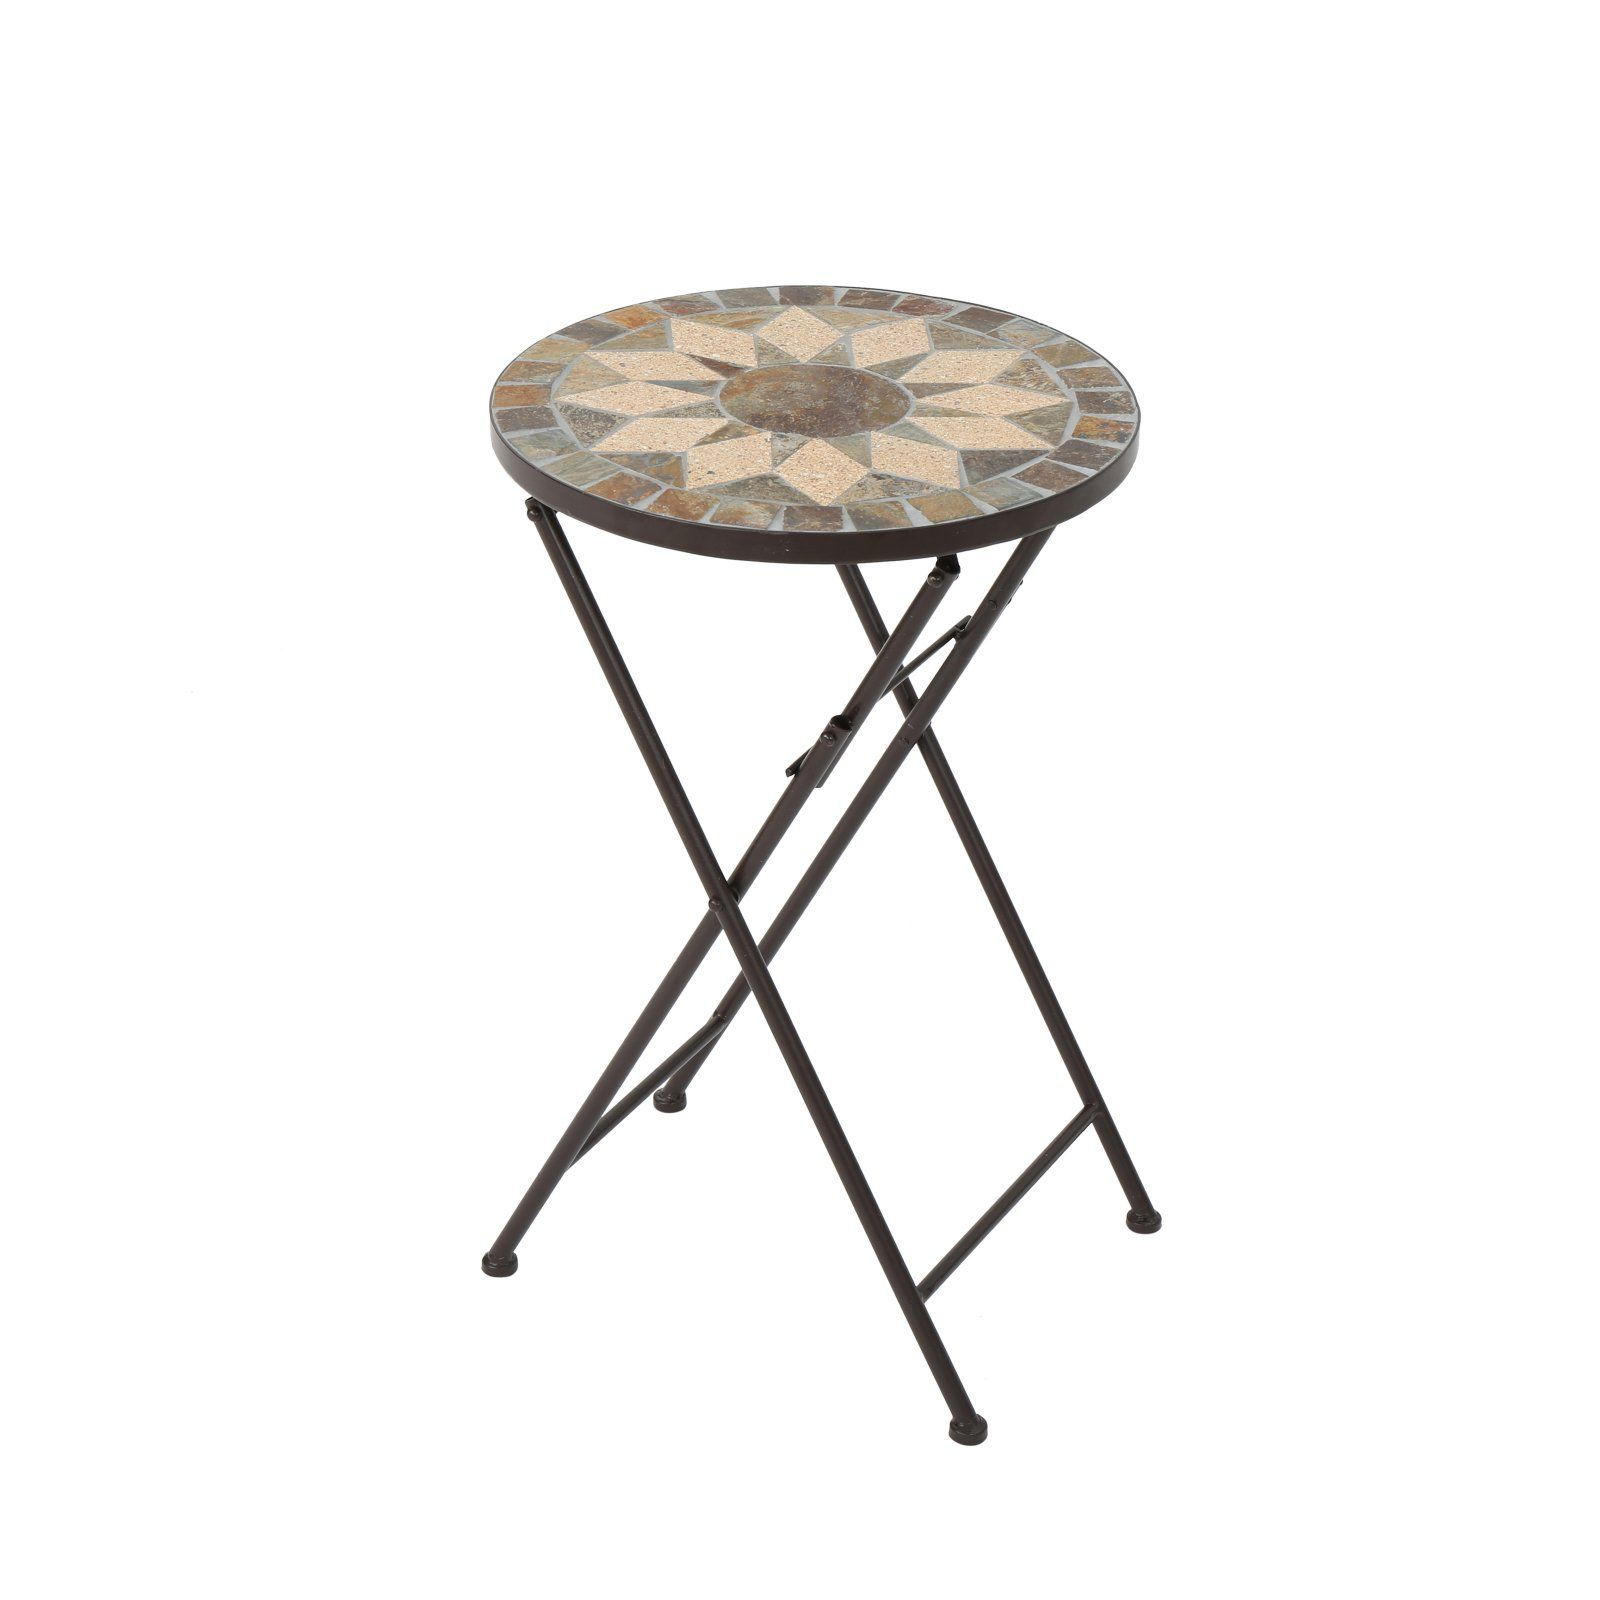 Outdoor Best Selling Home Silvester Stone Top Patio Side Table Products In 2019 Patio Side Table Outdoor Furniture Sets Patio Accessories